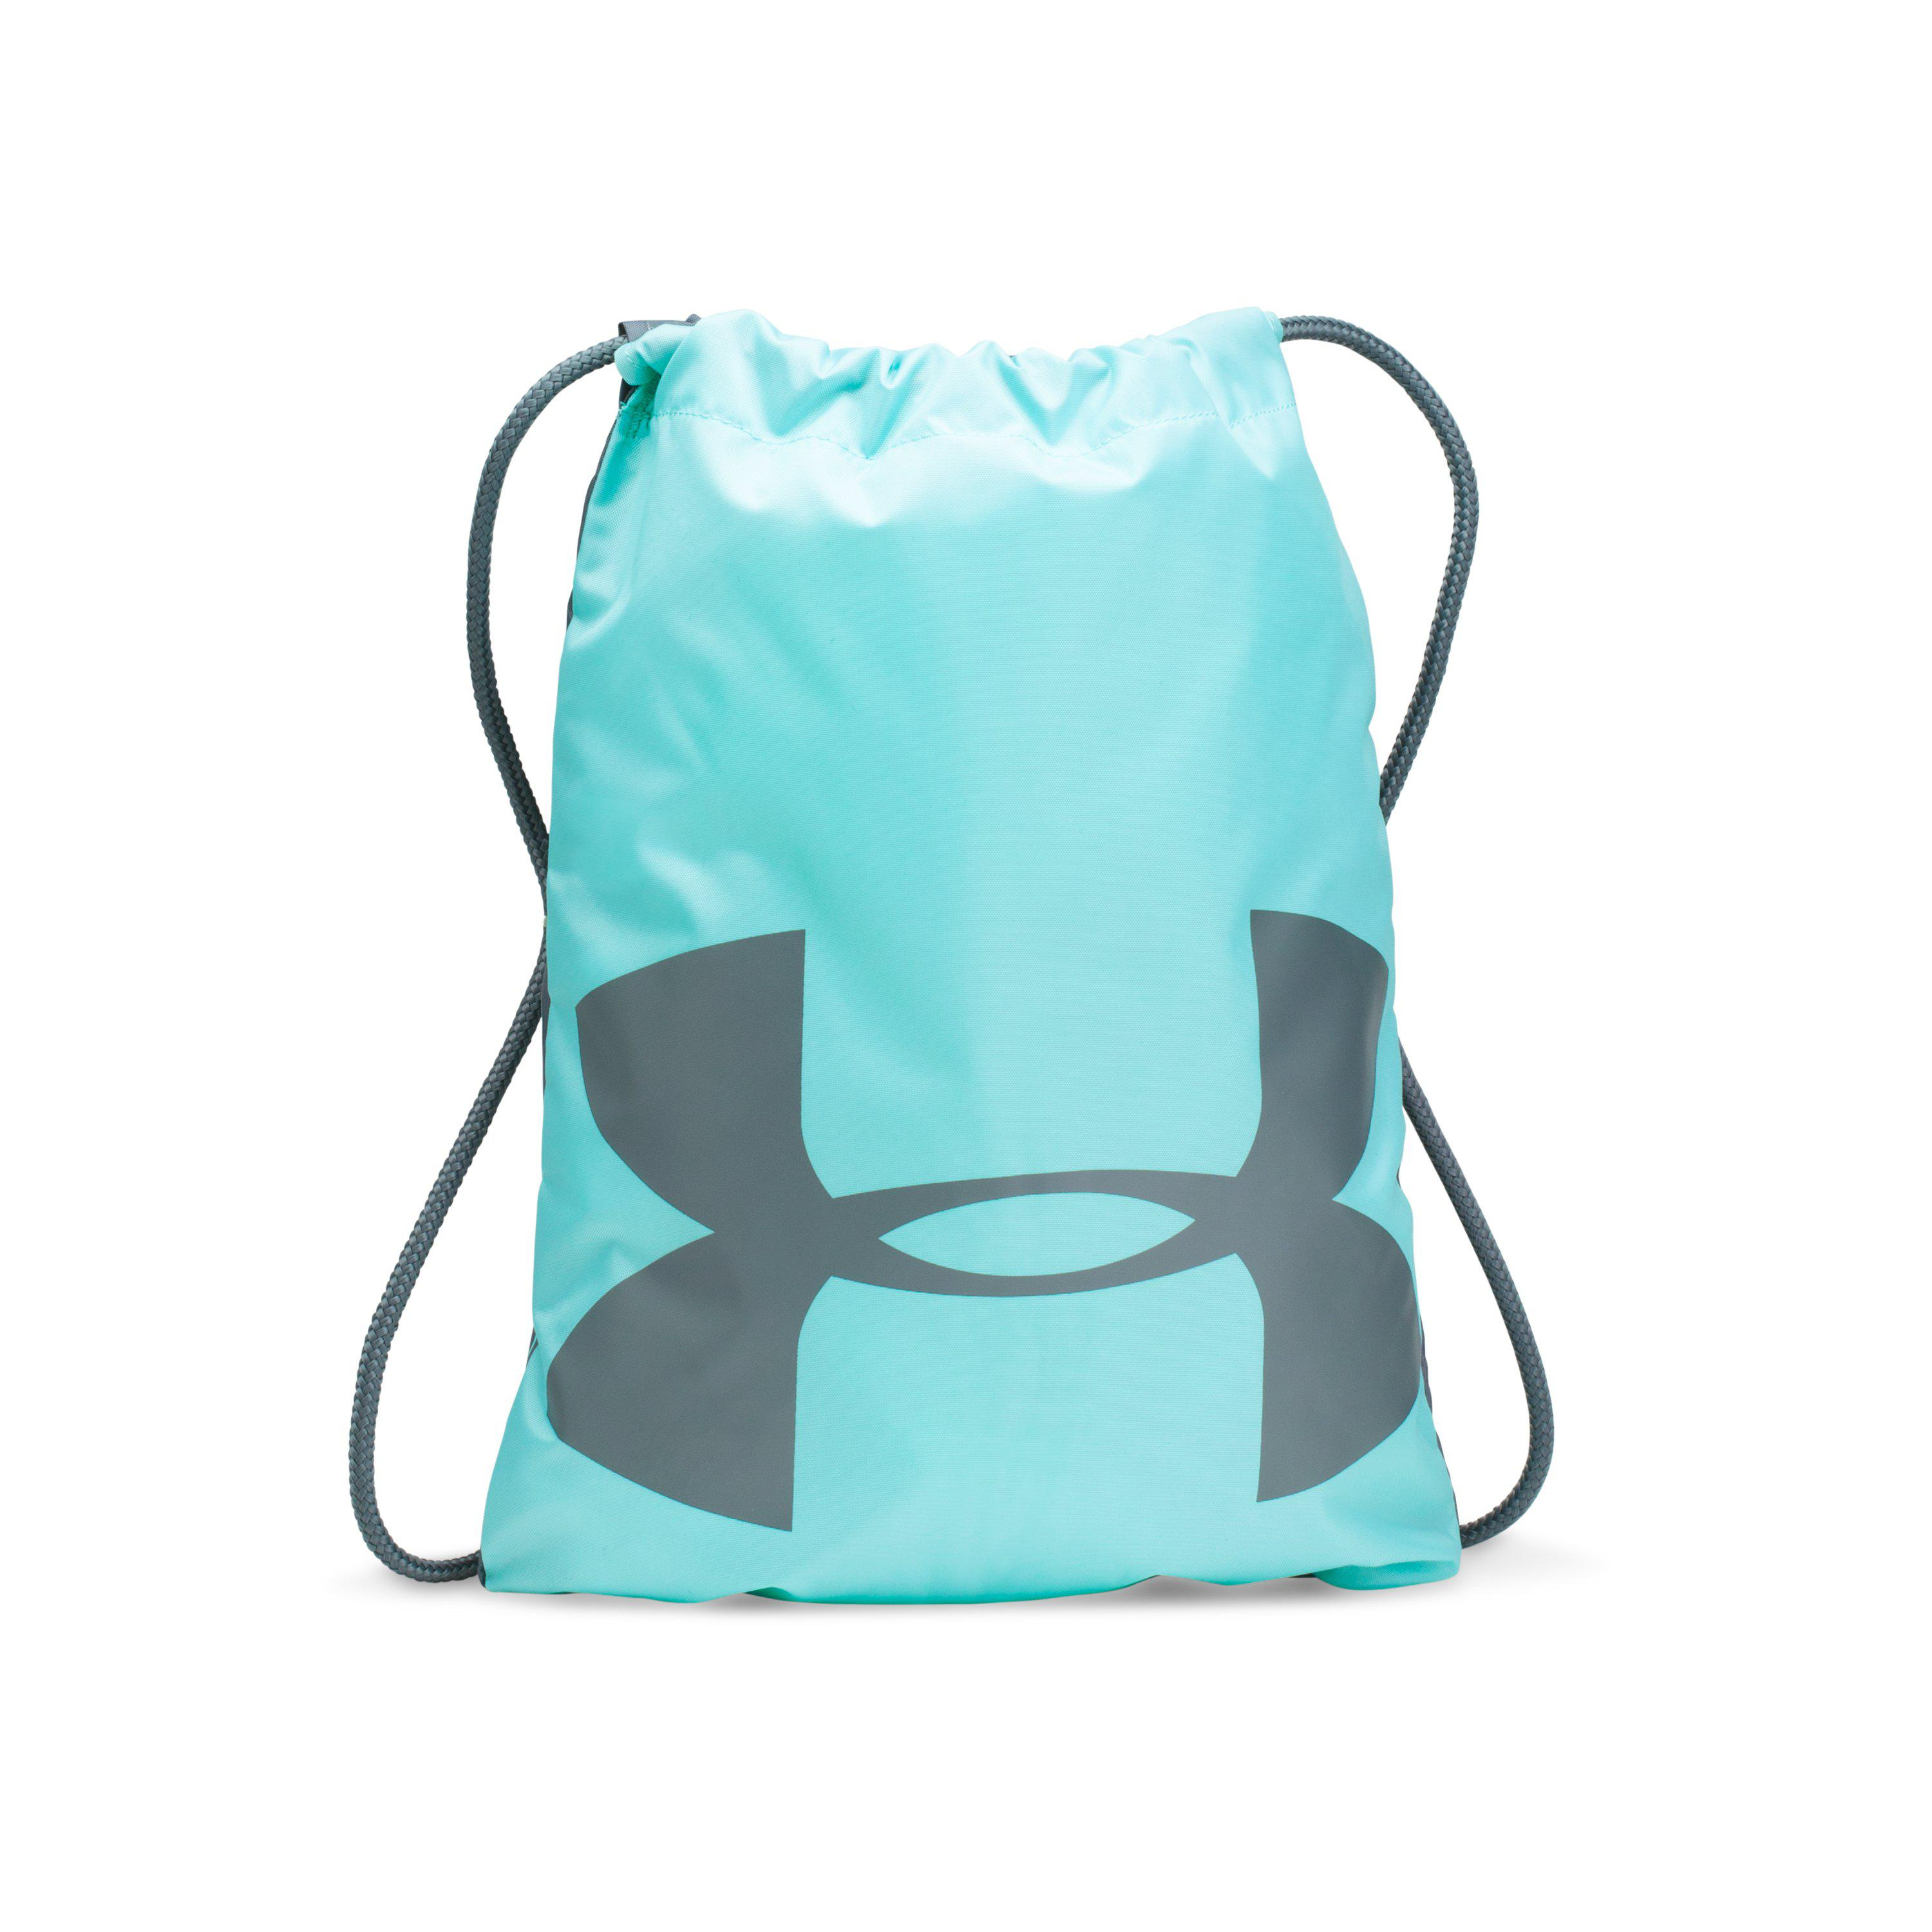 82ce5493d0 Lyst - Under Armour Ua Ozsee Sackpack in Blue